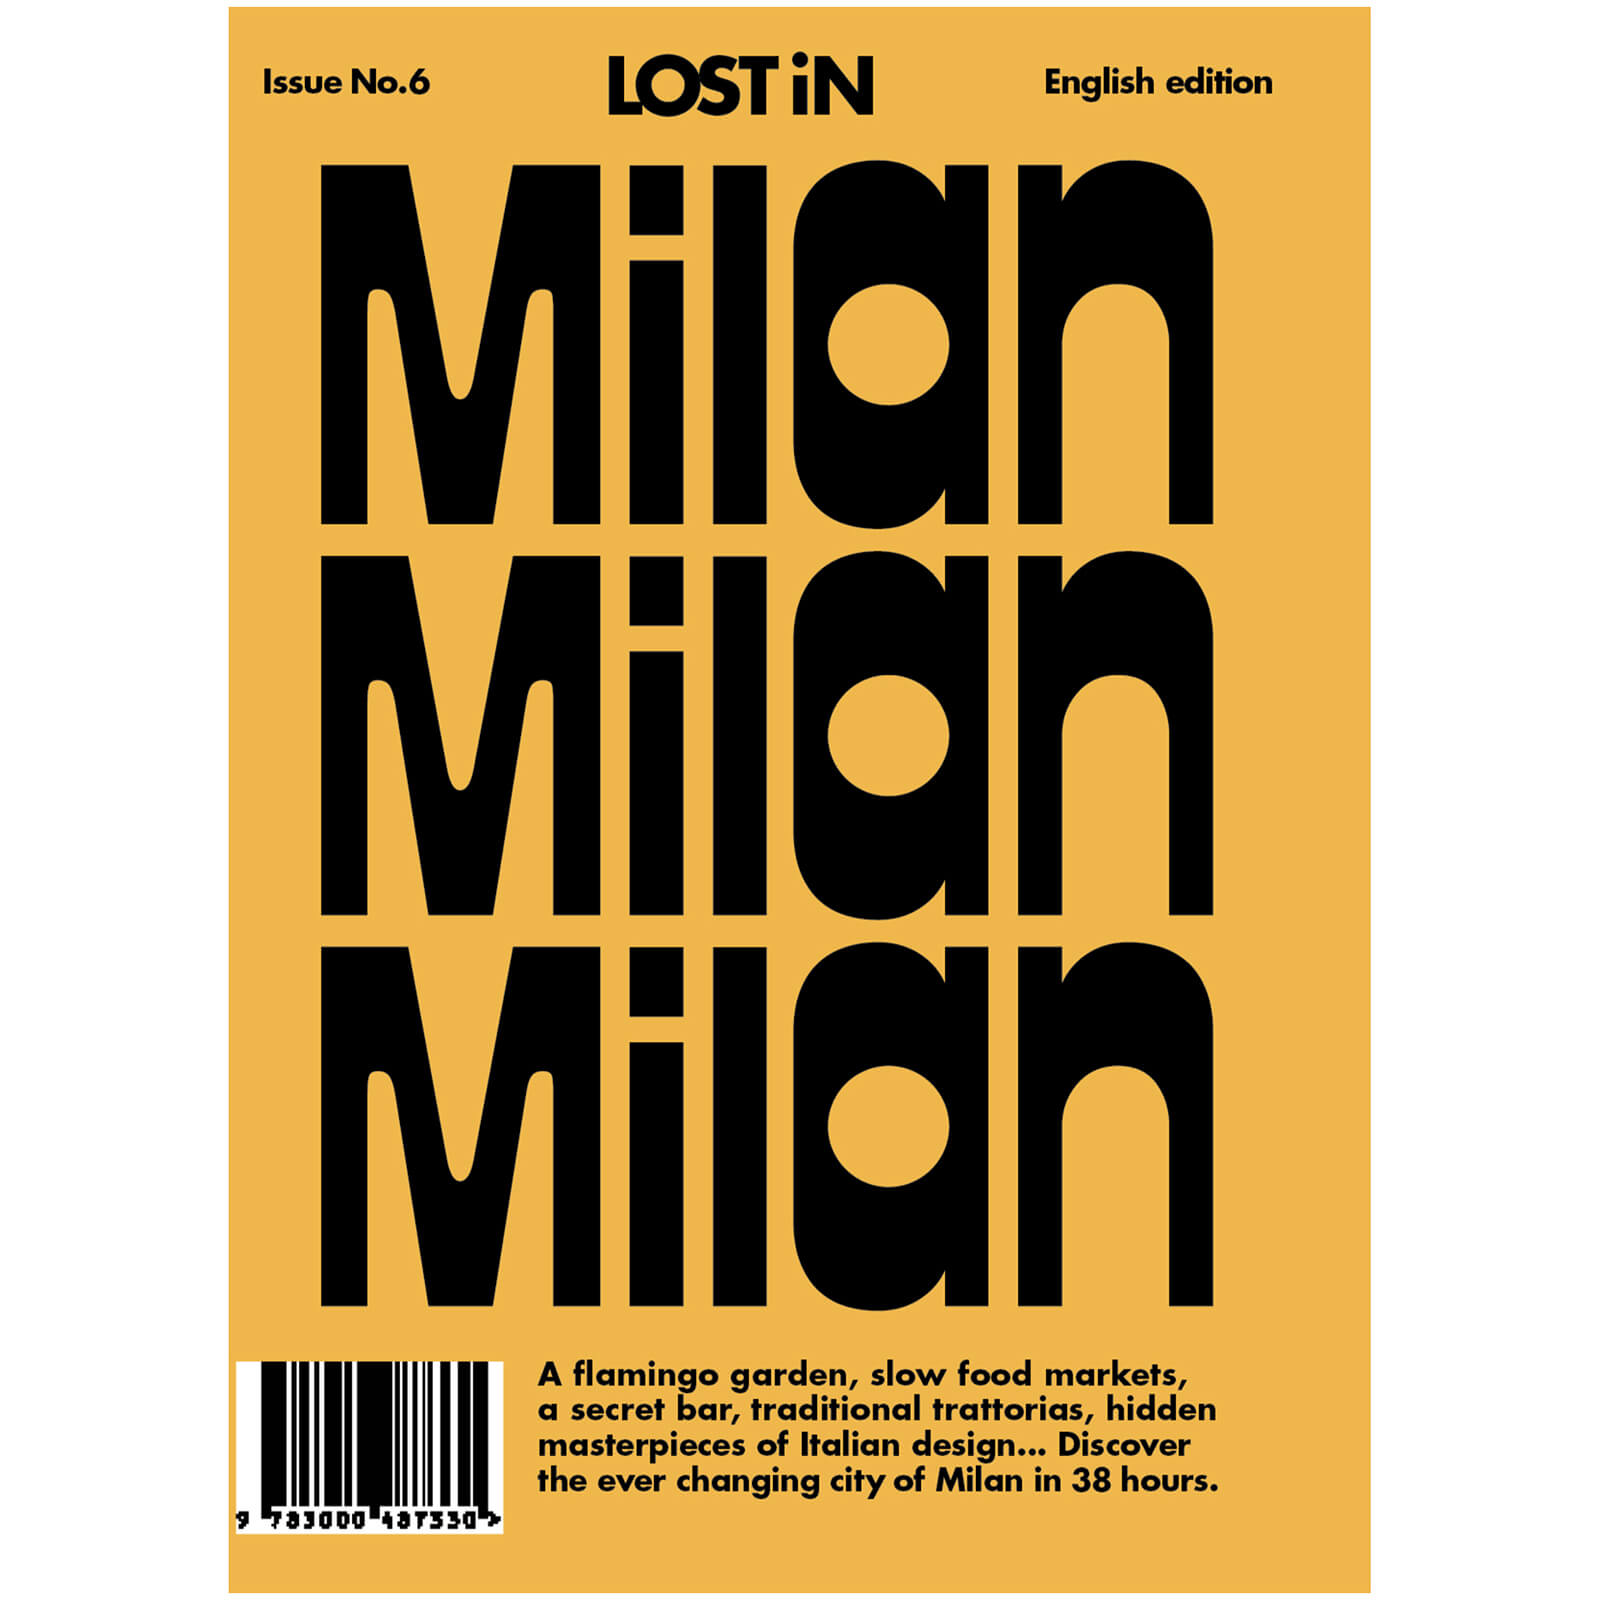 Lost In: Milan